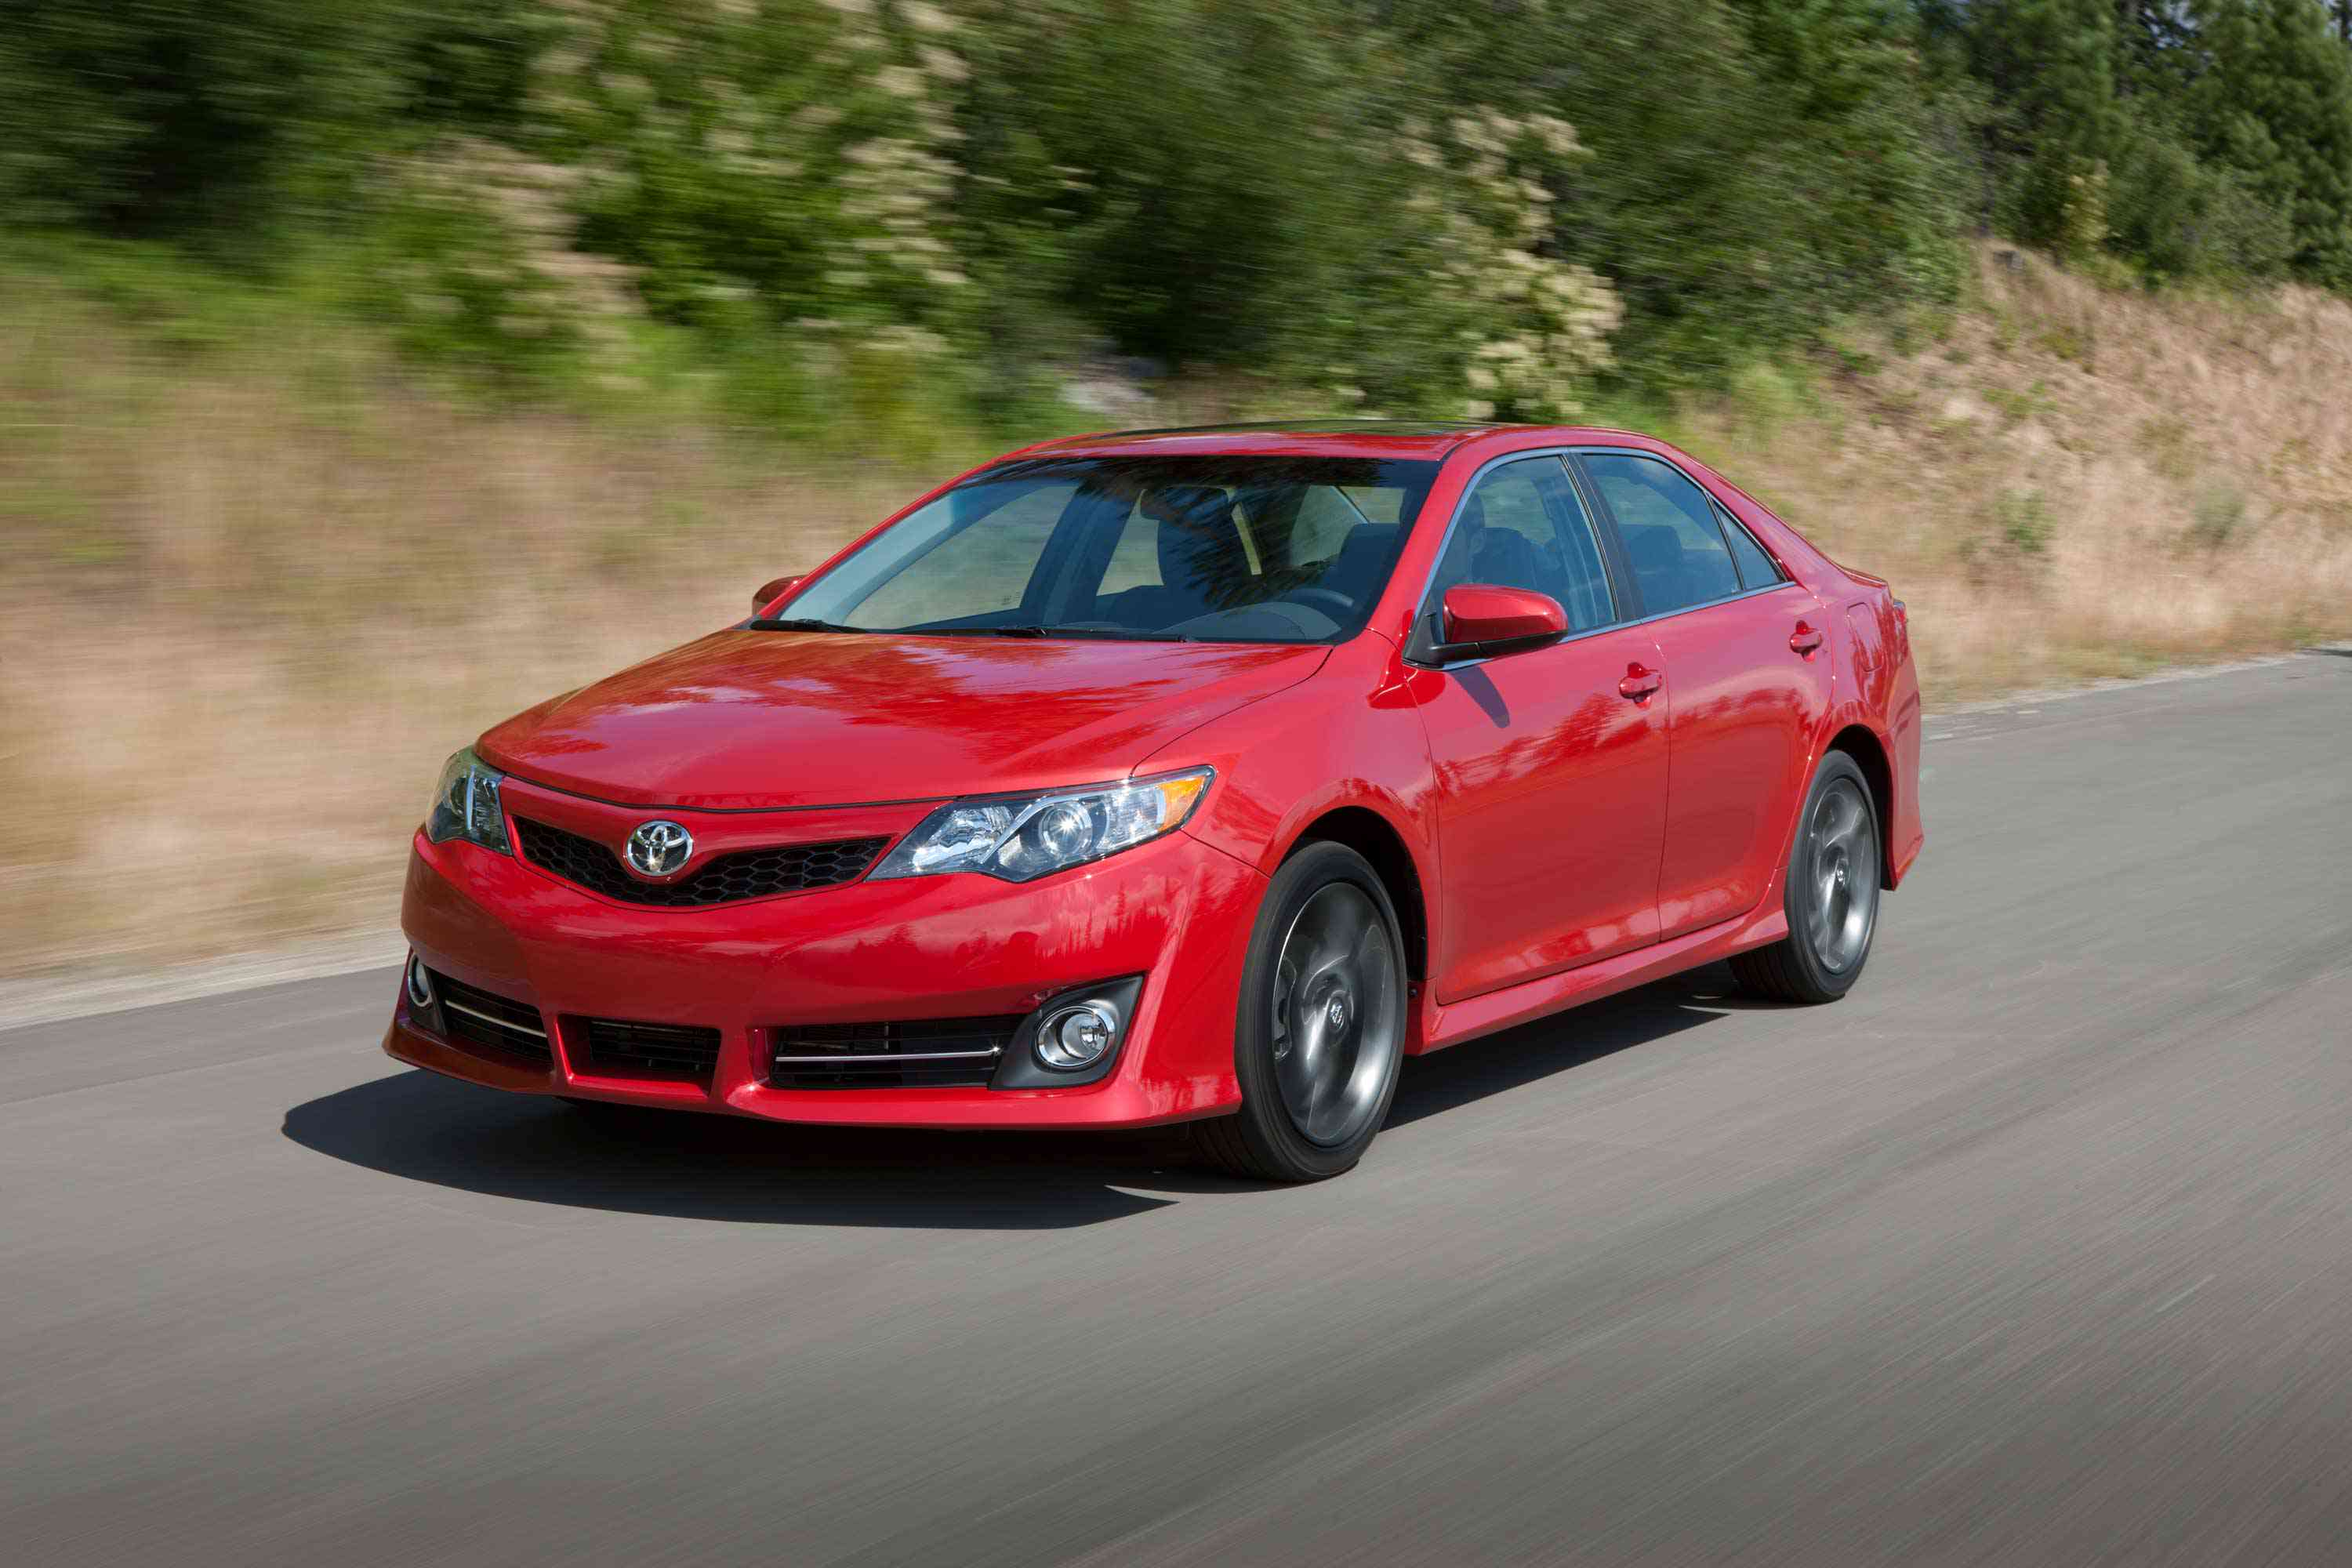 2013 toyota camry reviews test drives green car reports. Black Bedroom Furniture Sets. Home Design Ideas